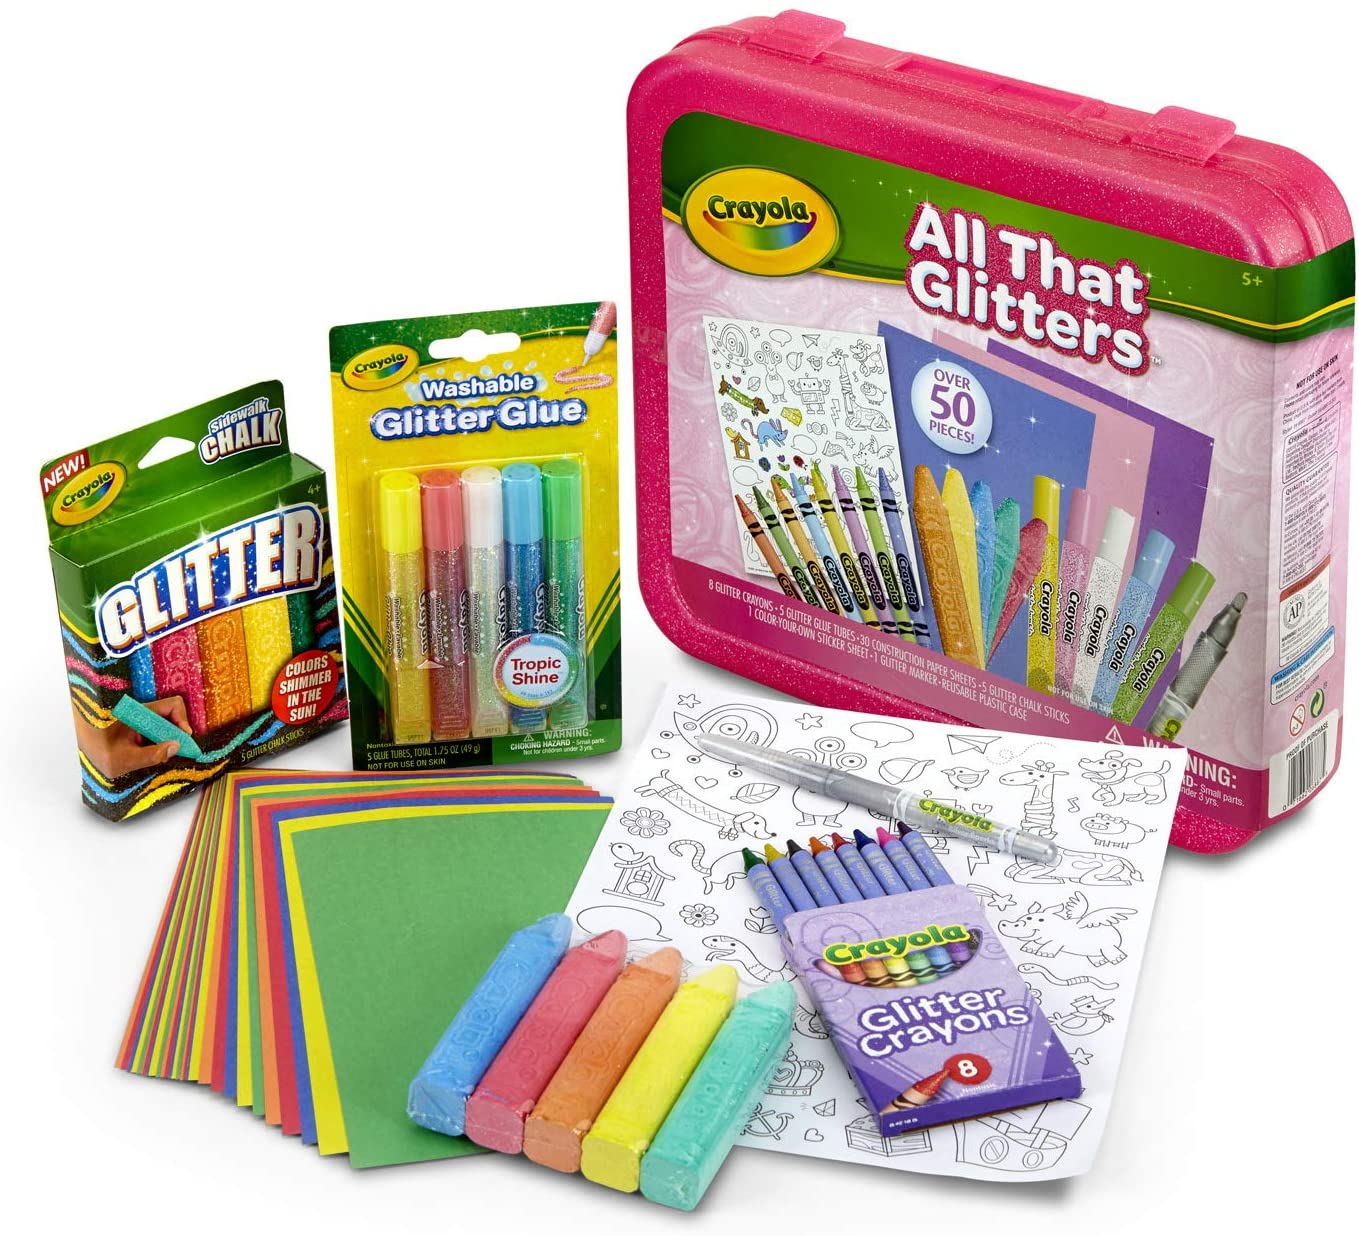 Crayola All That Glitters Art Case Coloring Set